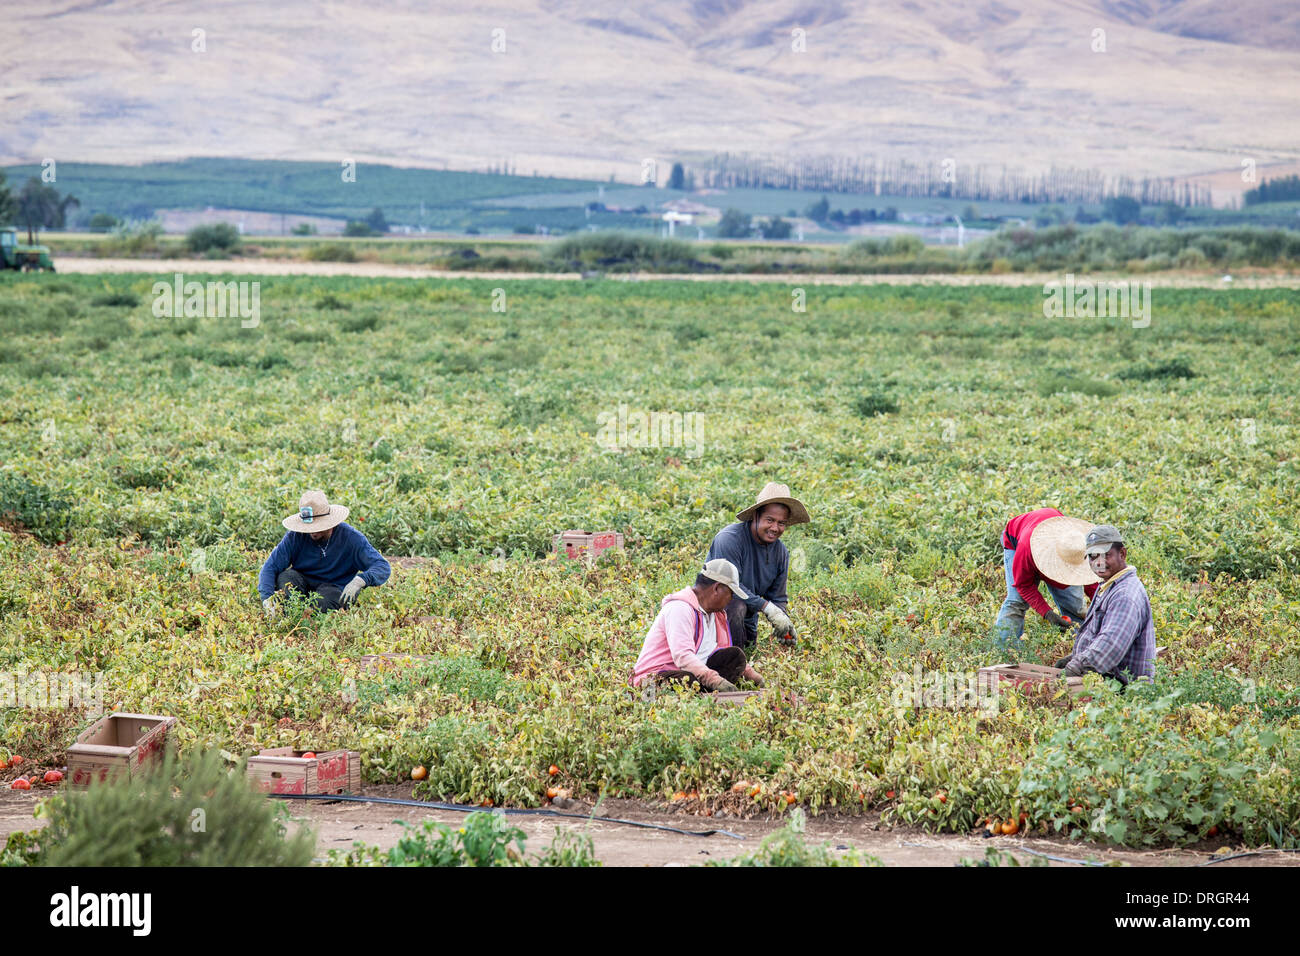 Mexican migrant workers picking tomatoes in Yakima, Washington, USA - Stock Image